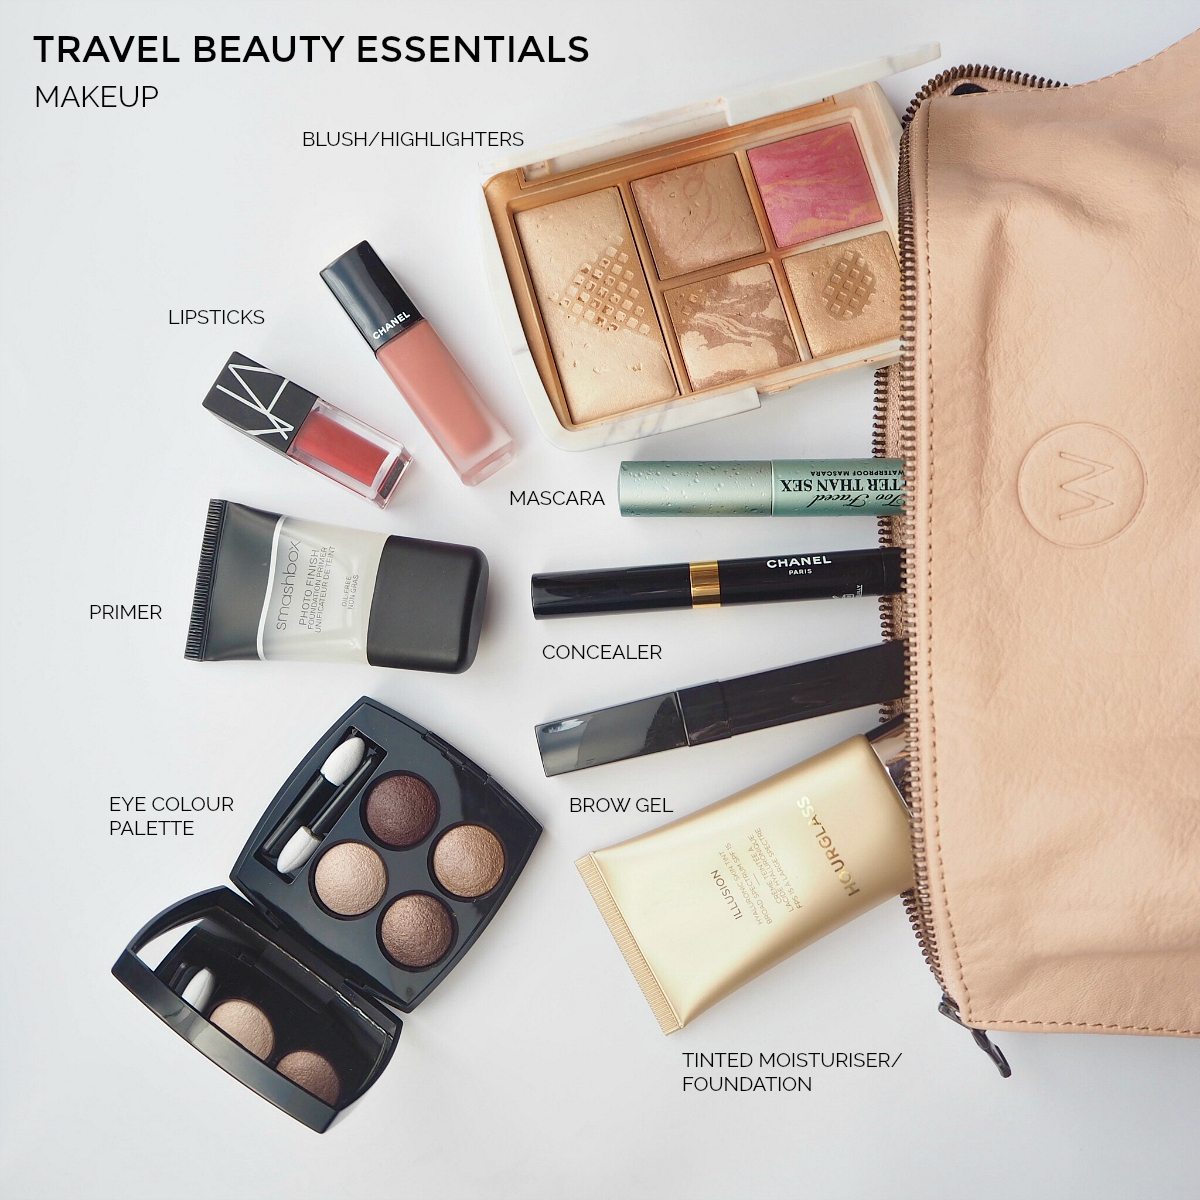 Travel beauty essentials: makeup   Styling You